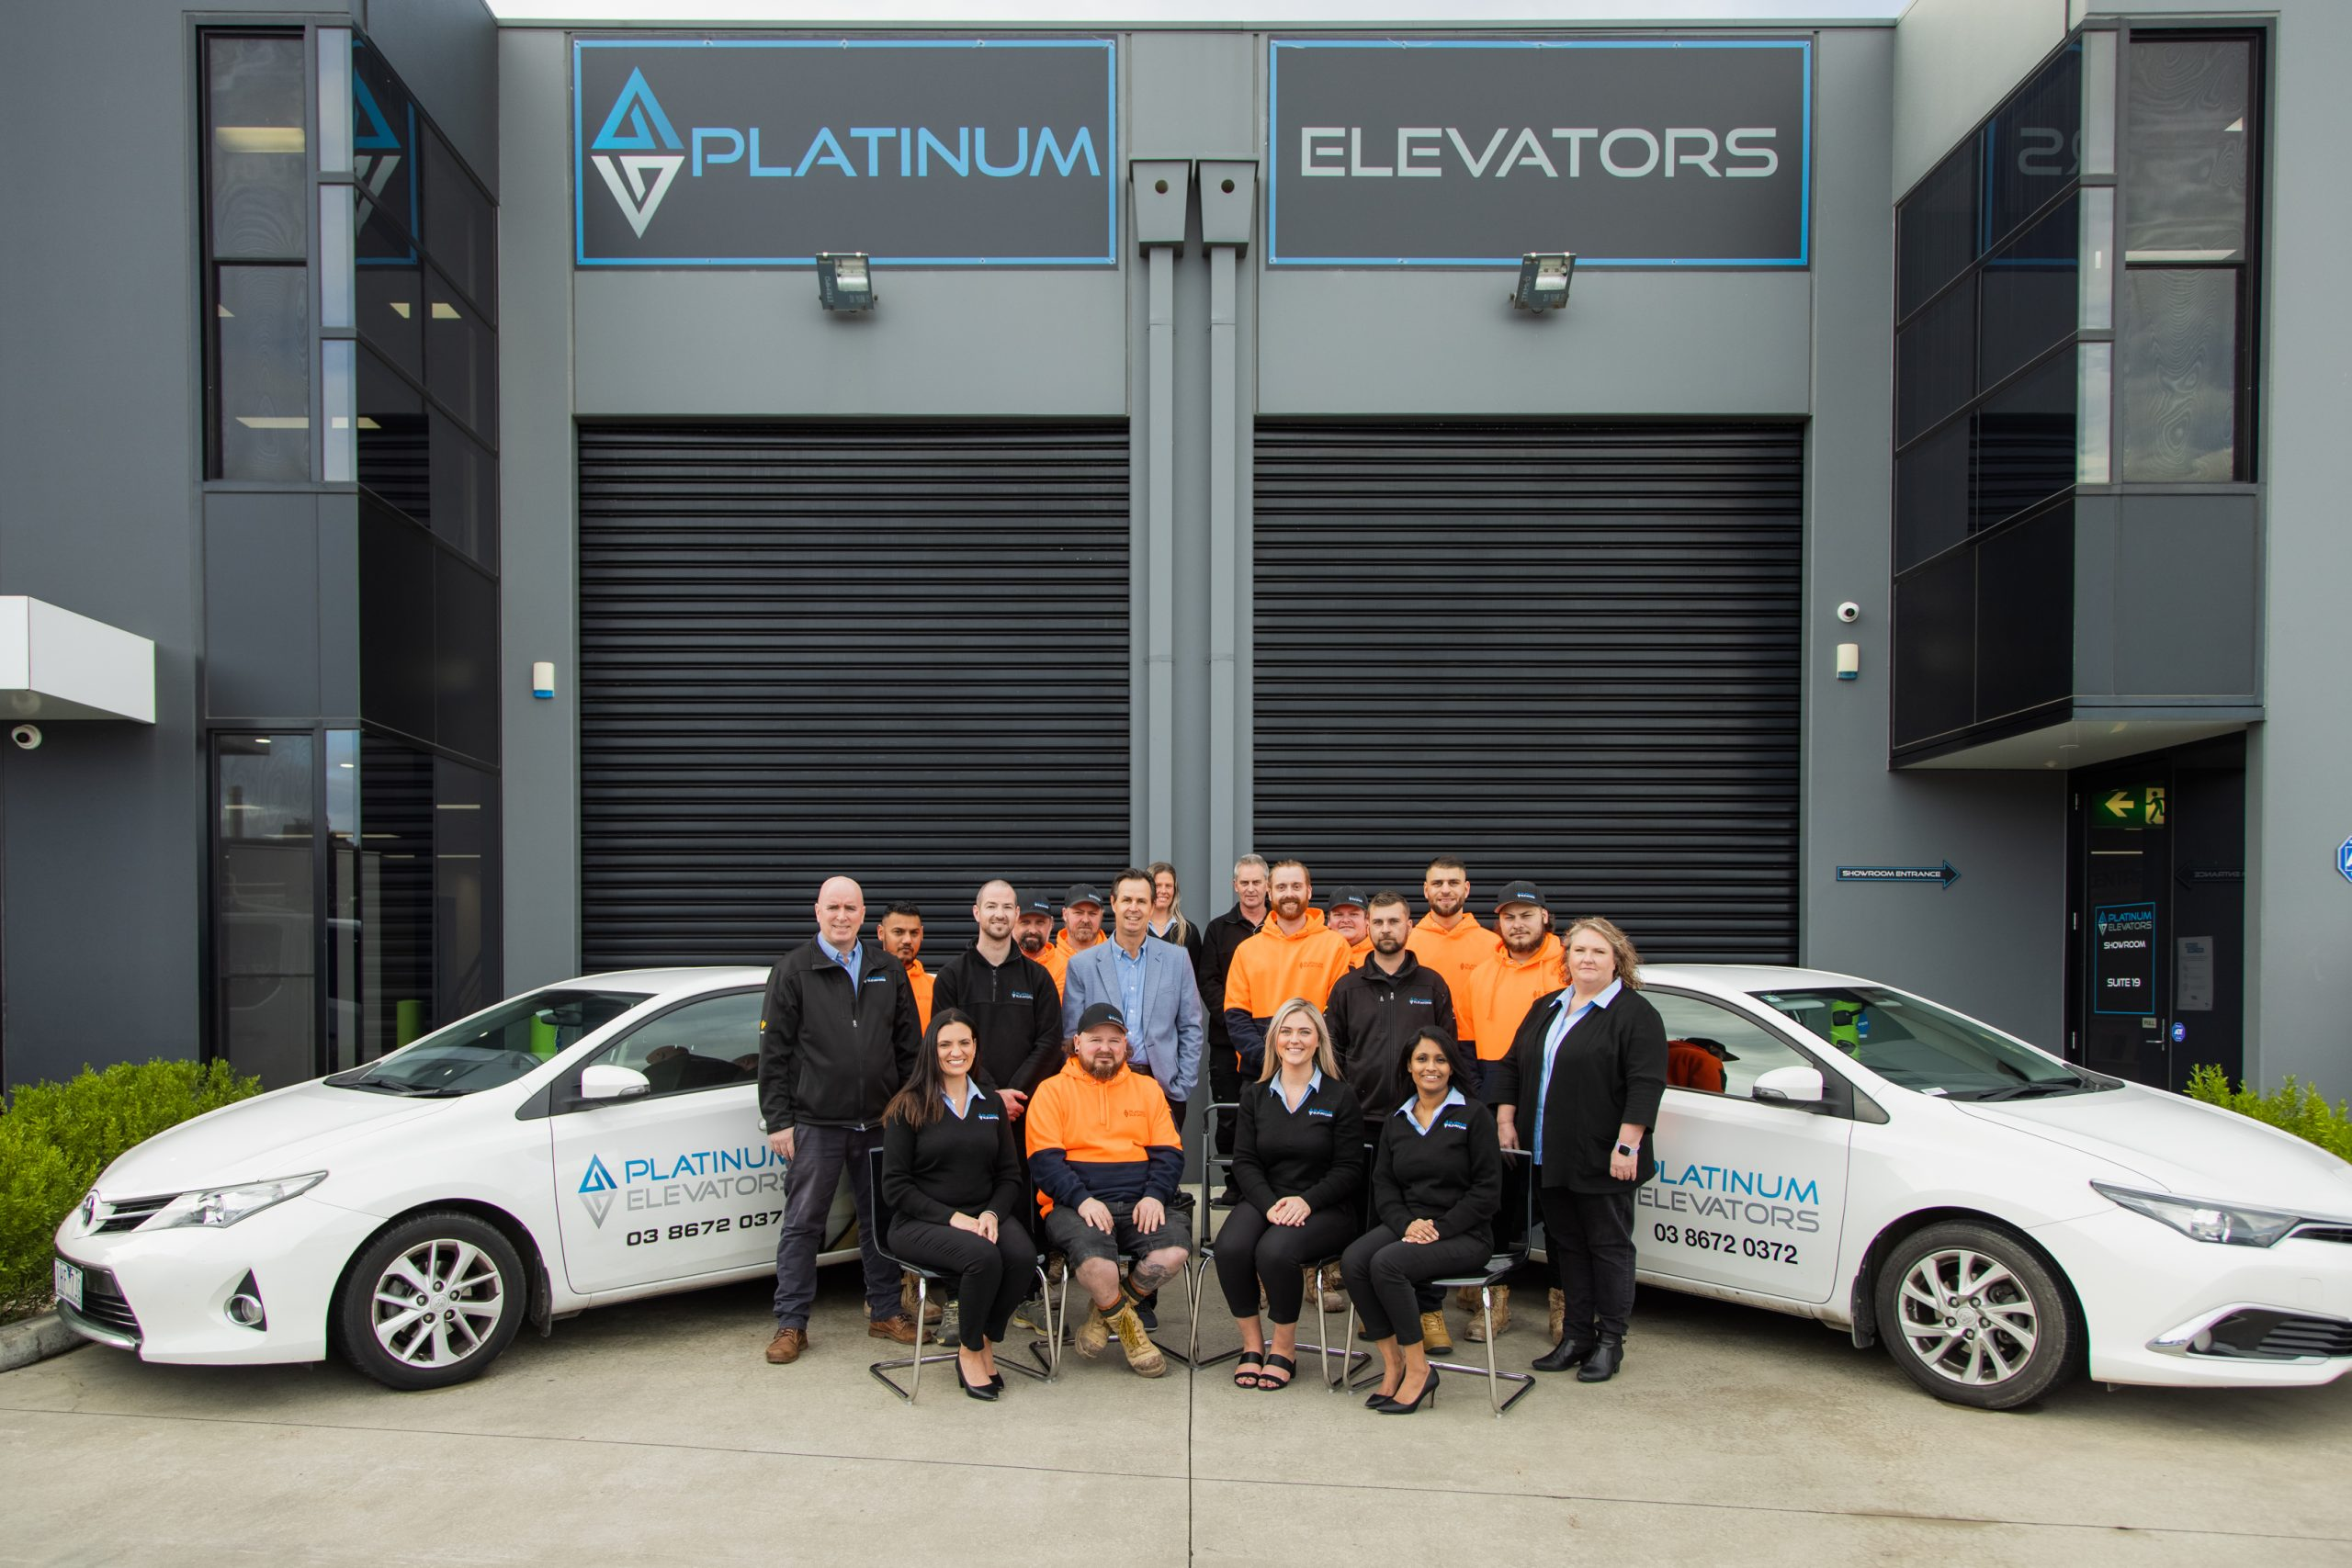 Platinum Elevators Sales and Installation team in front of the company cars and showroom.